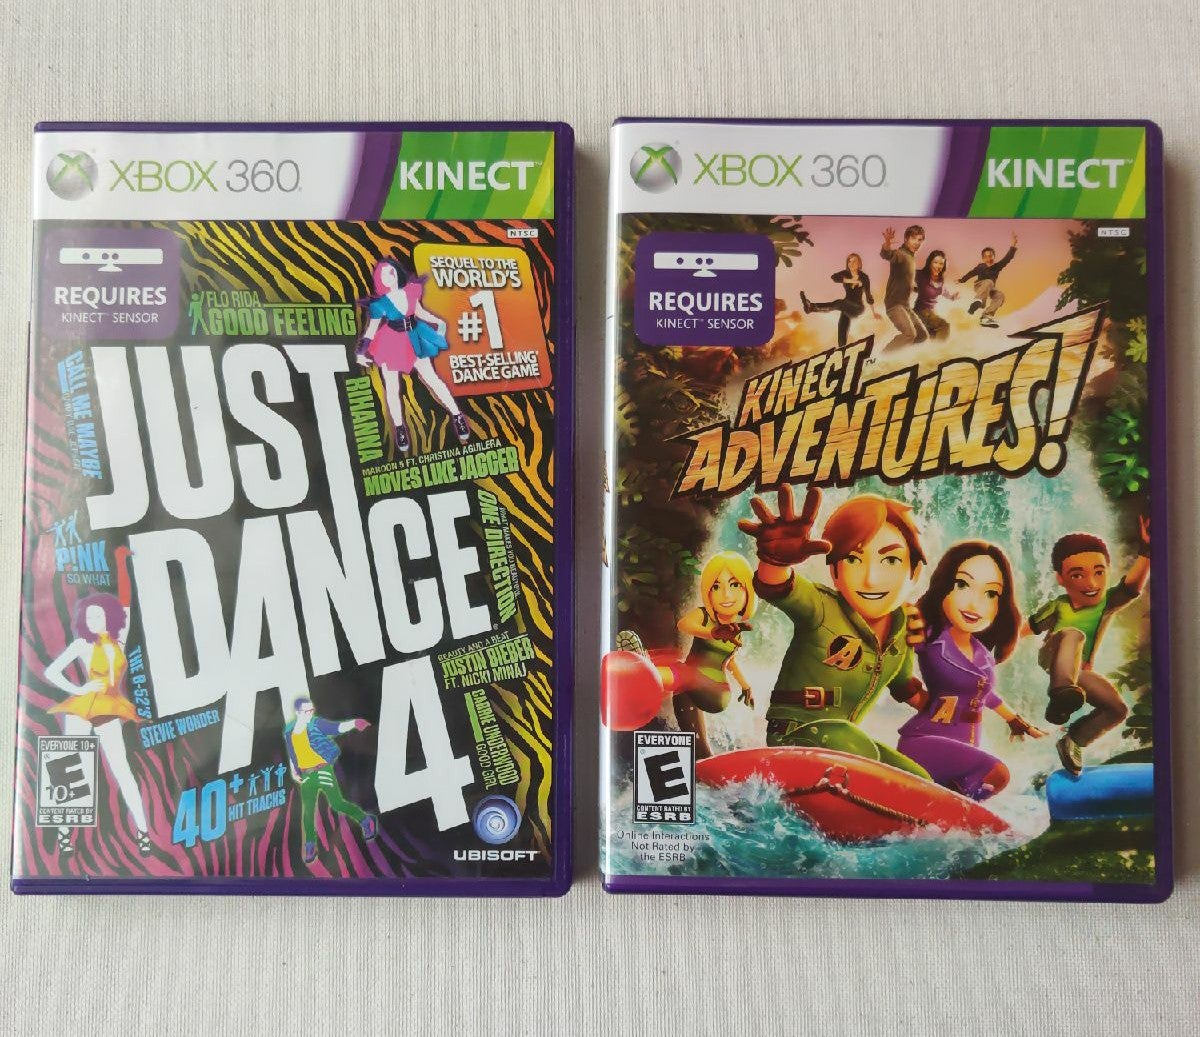 Just Dance 4 and Kinect Adventures Xbox